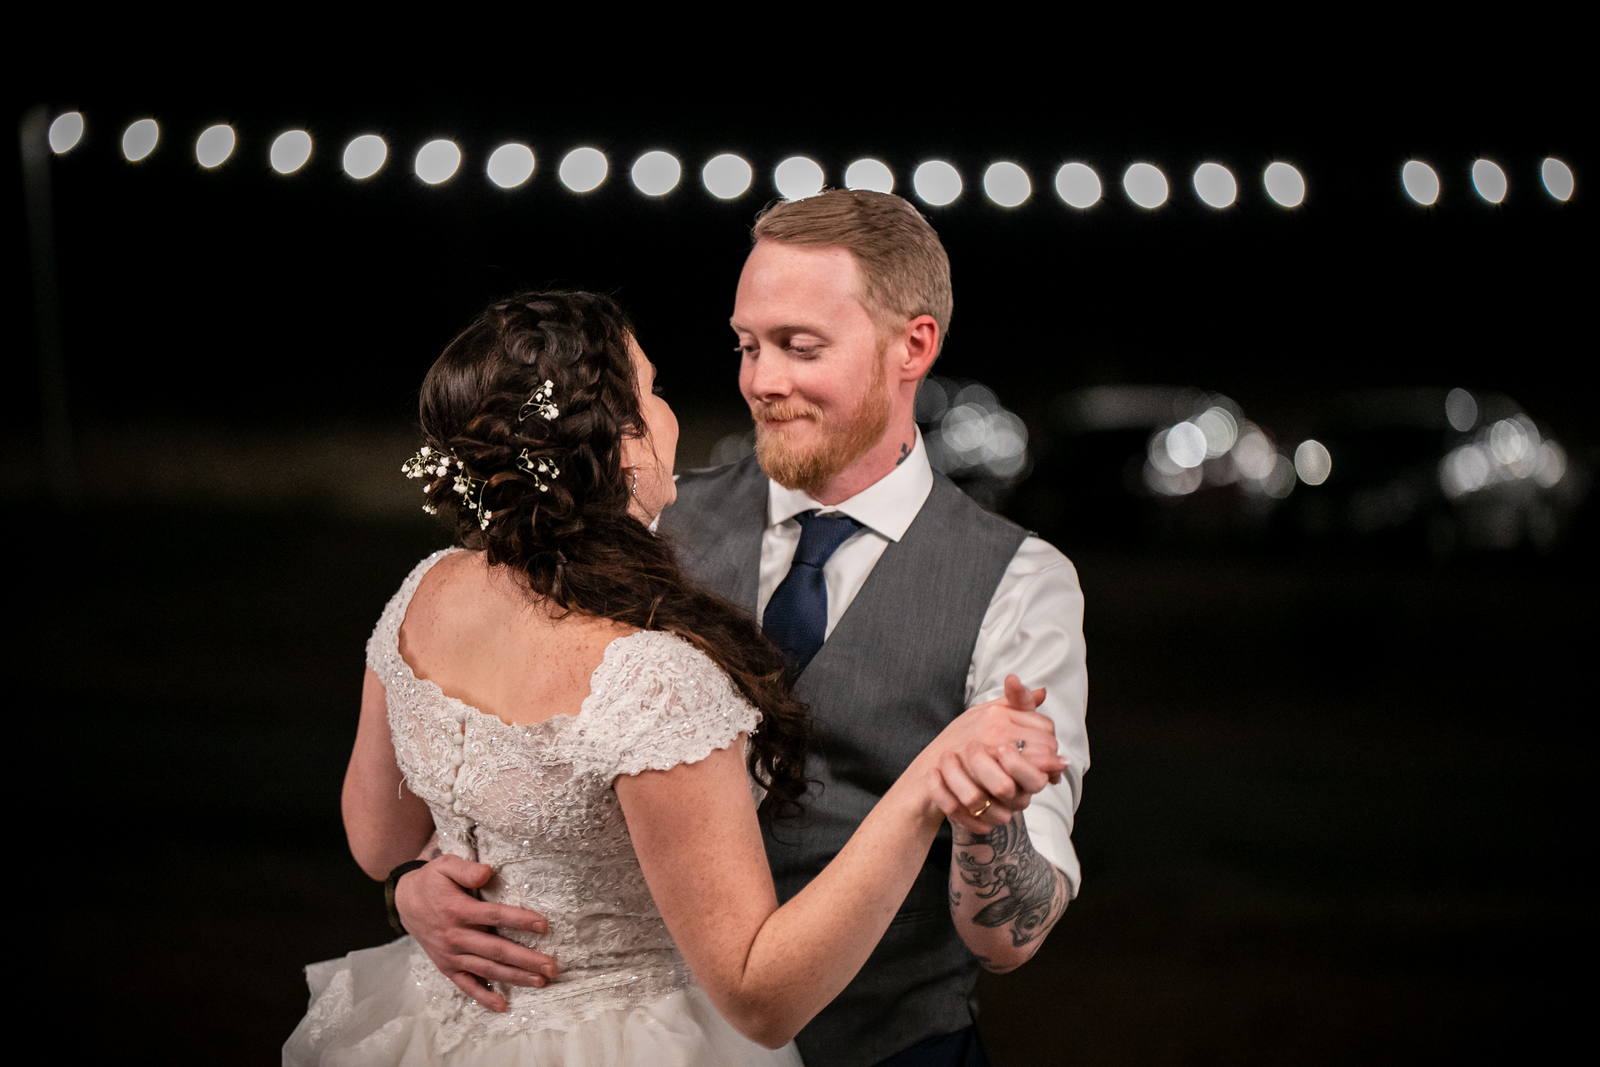 bride and groom dance outside away from the guests on their wedding night